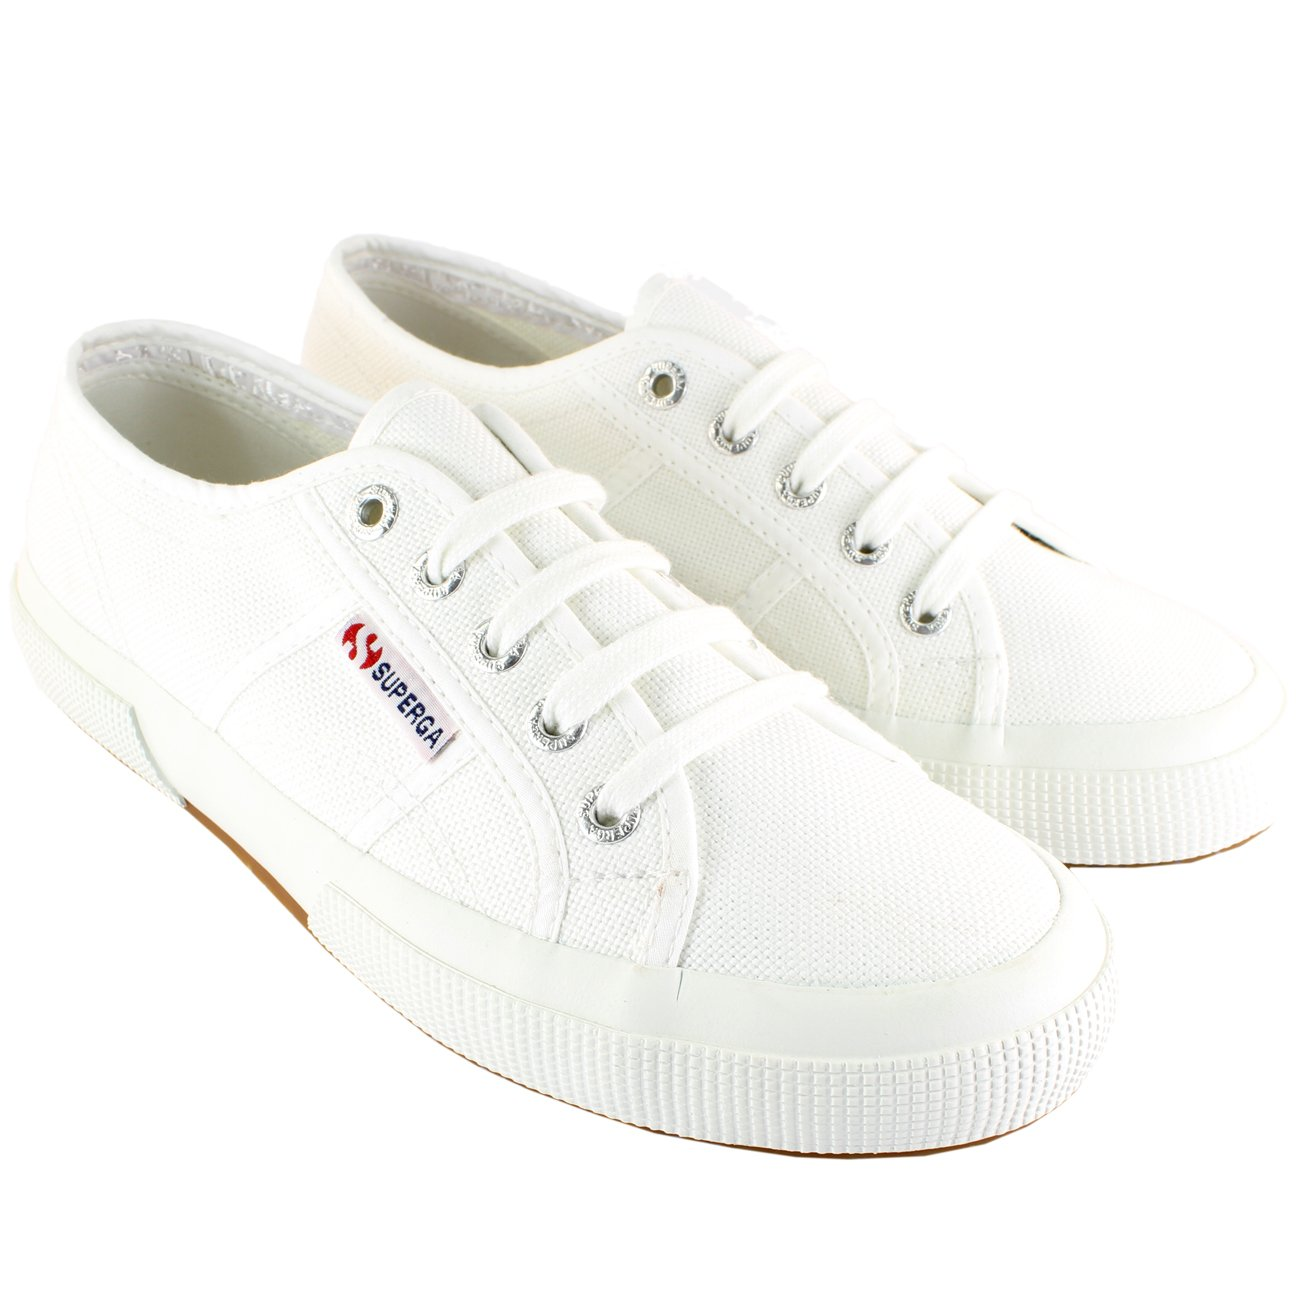 Superga Womens 2750 Cotu Canvas Trainers B00NWRCJBQ 7 M US|White